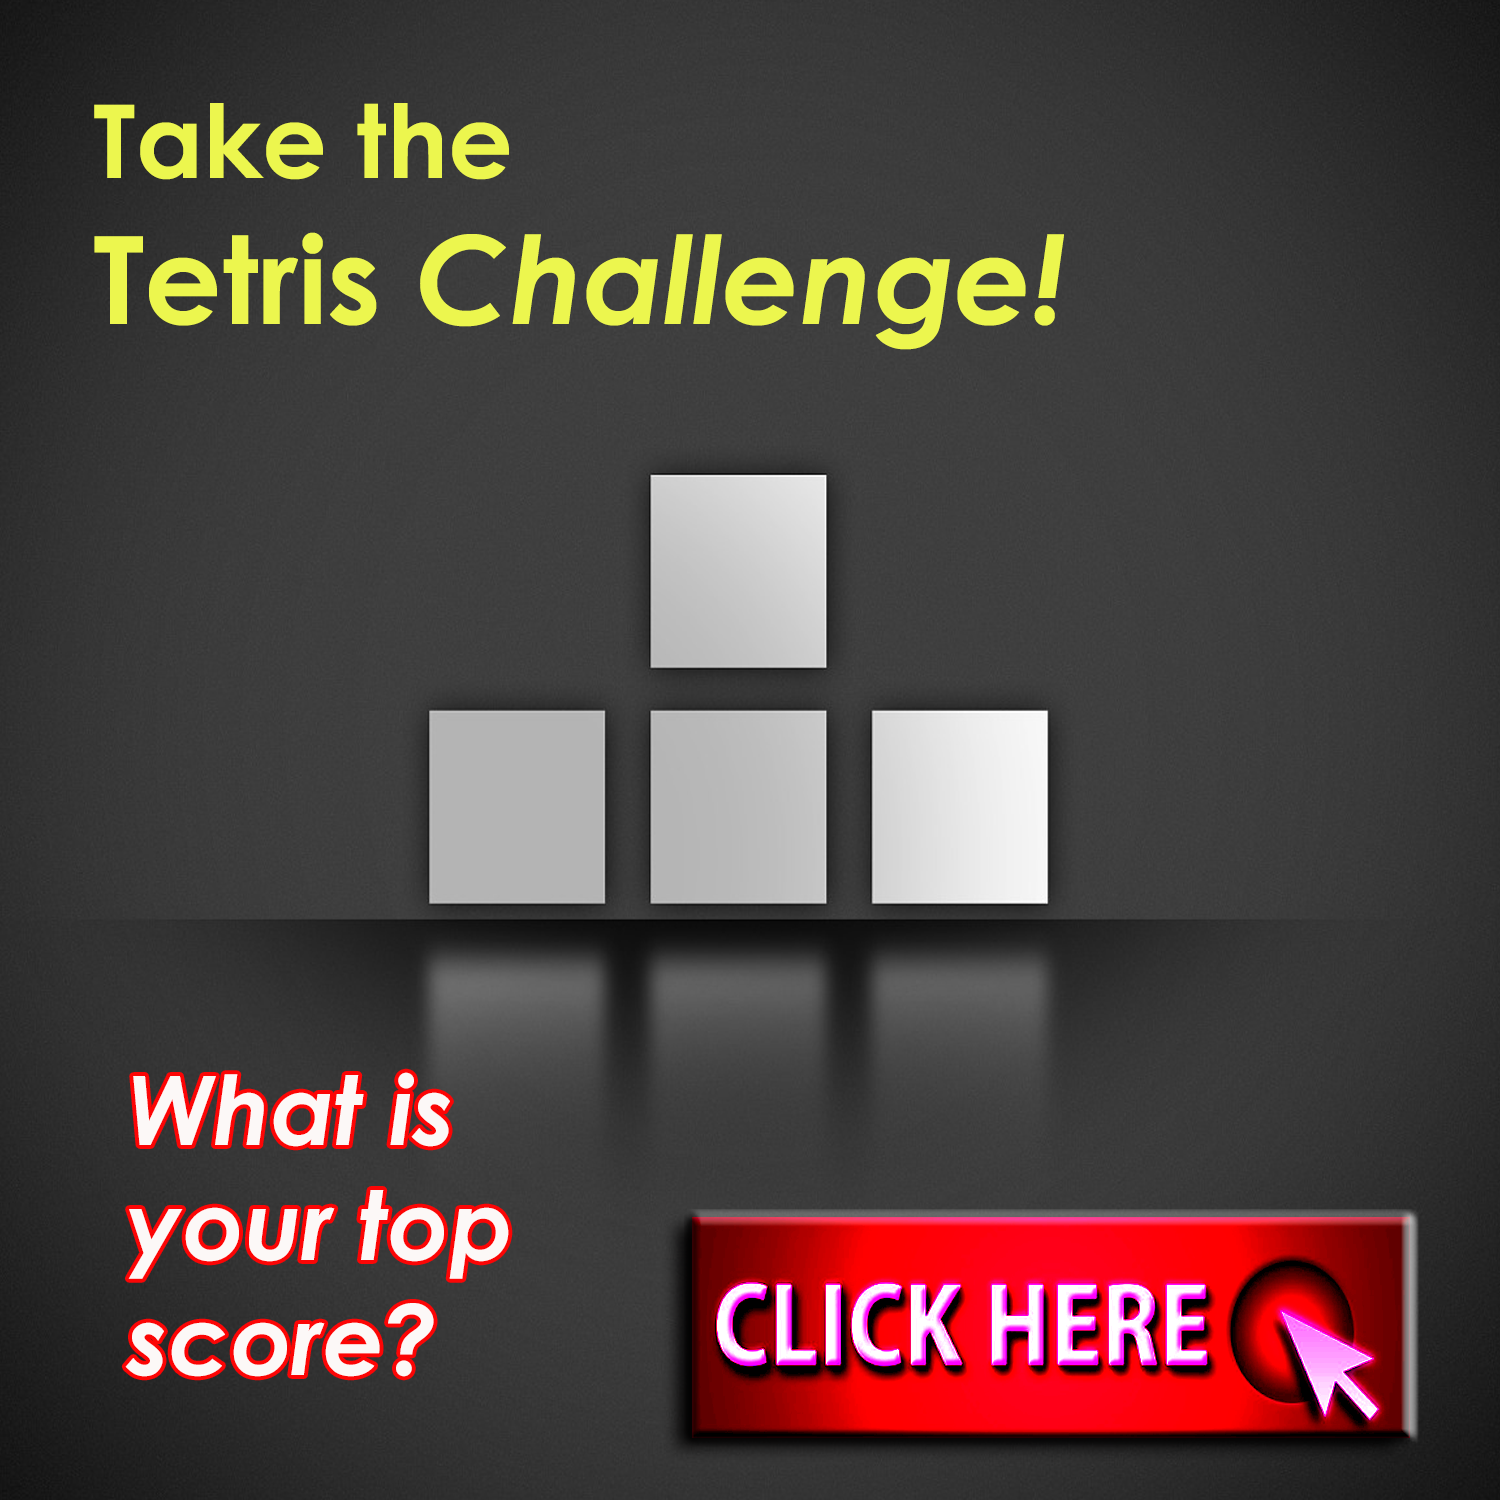 Take the Tetris Challenge! What is your top score? Click here to play!